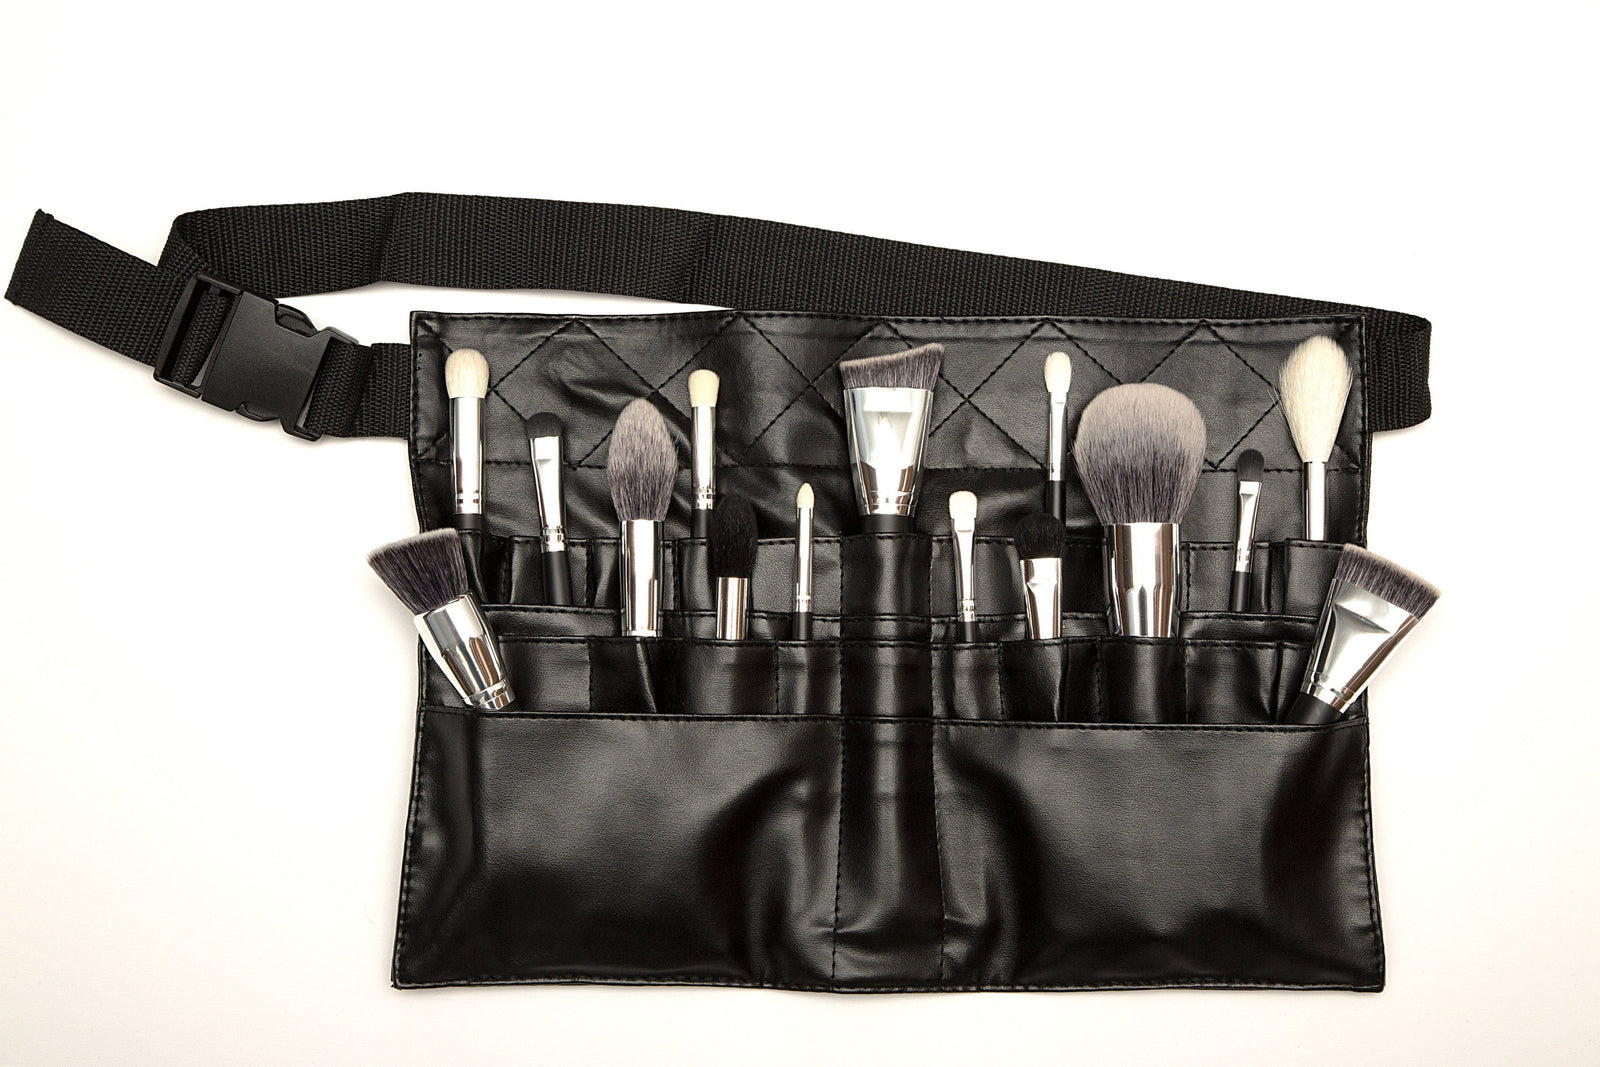 A1 Professional Makeup Artist Apron - Crownbrush